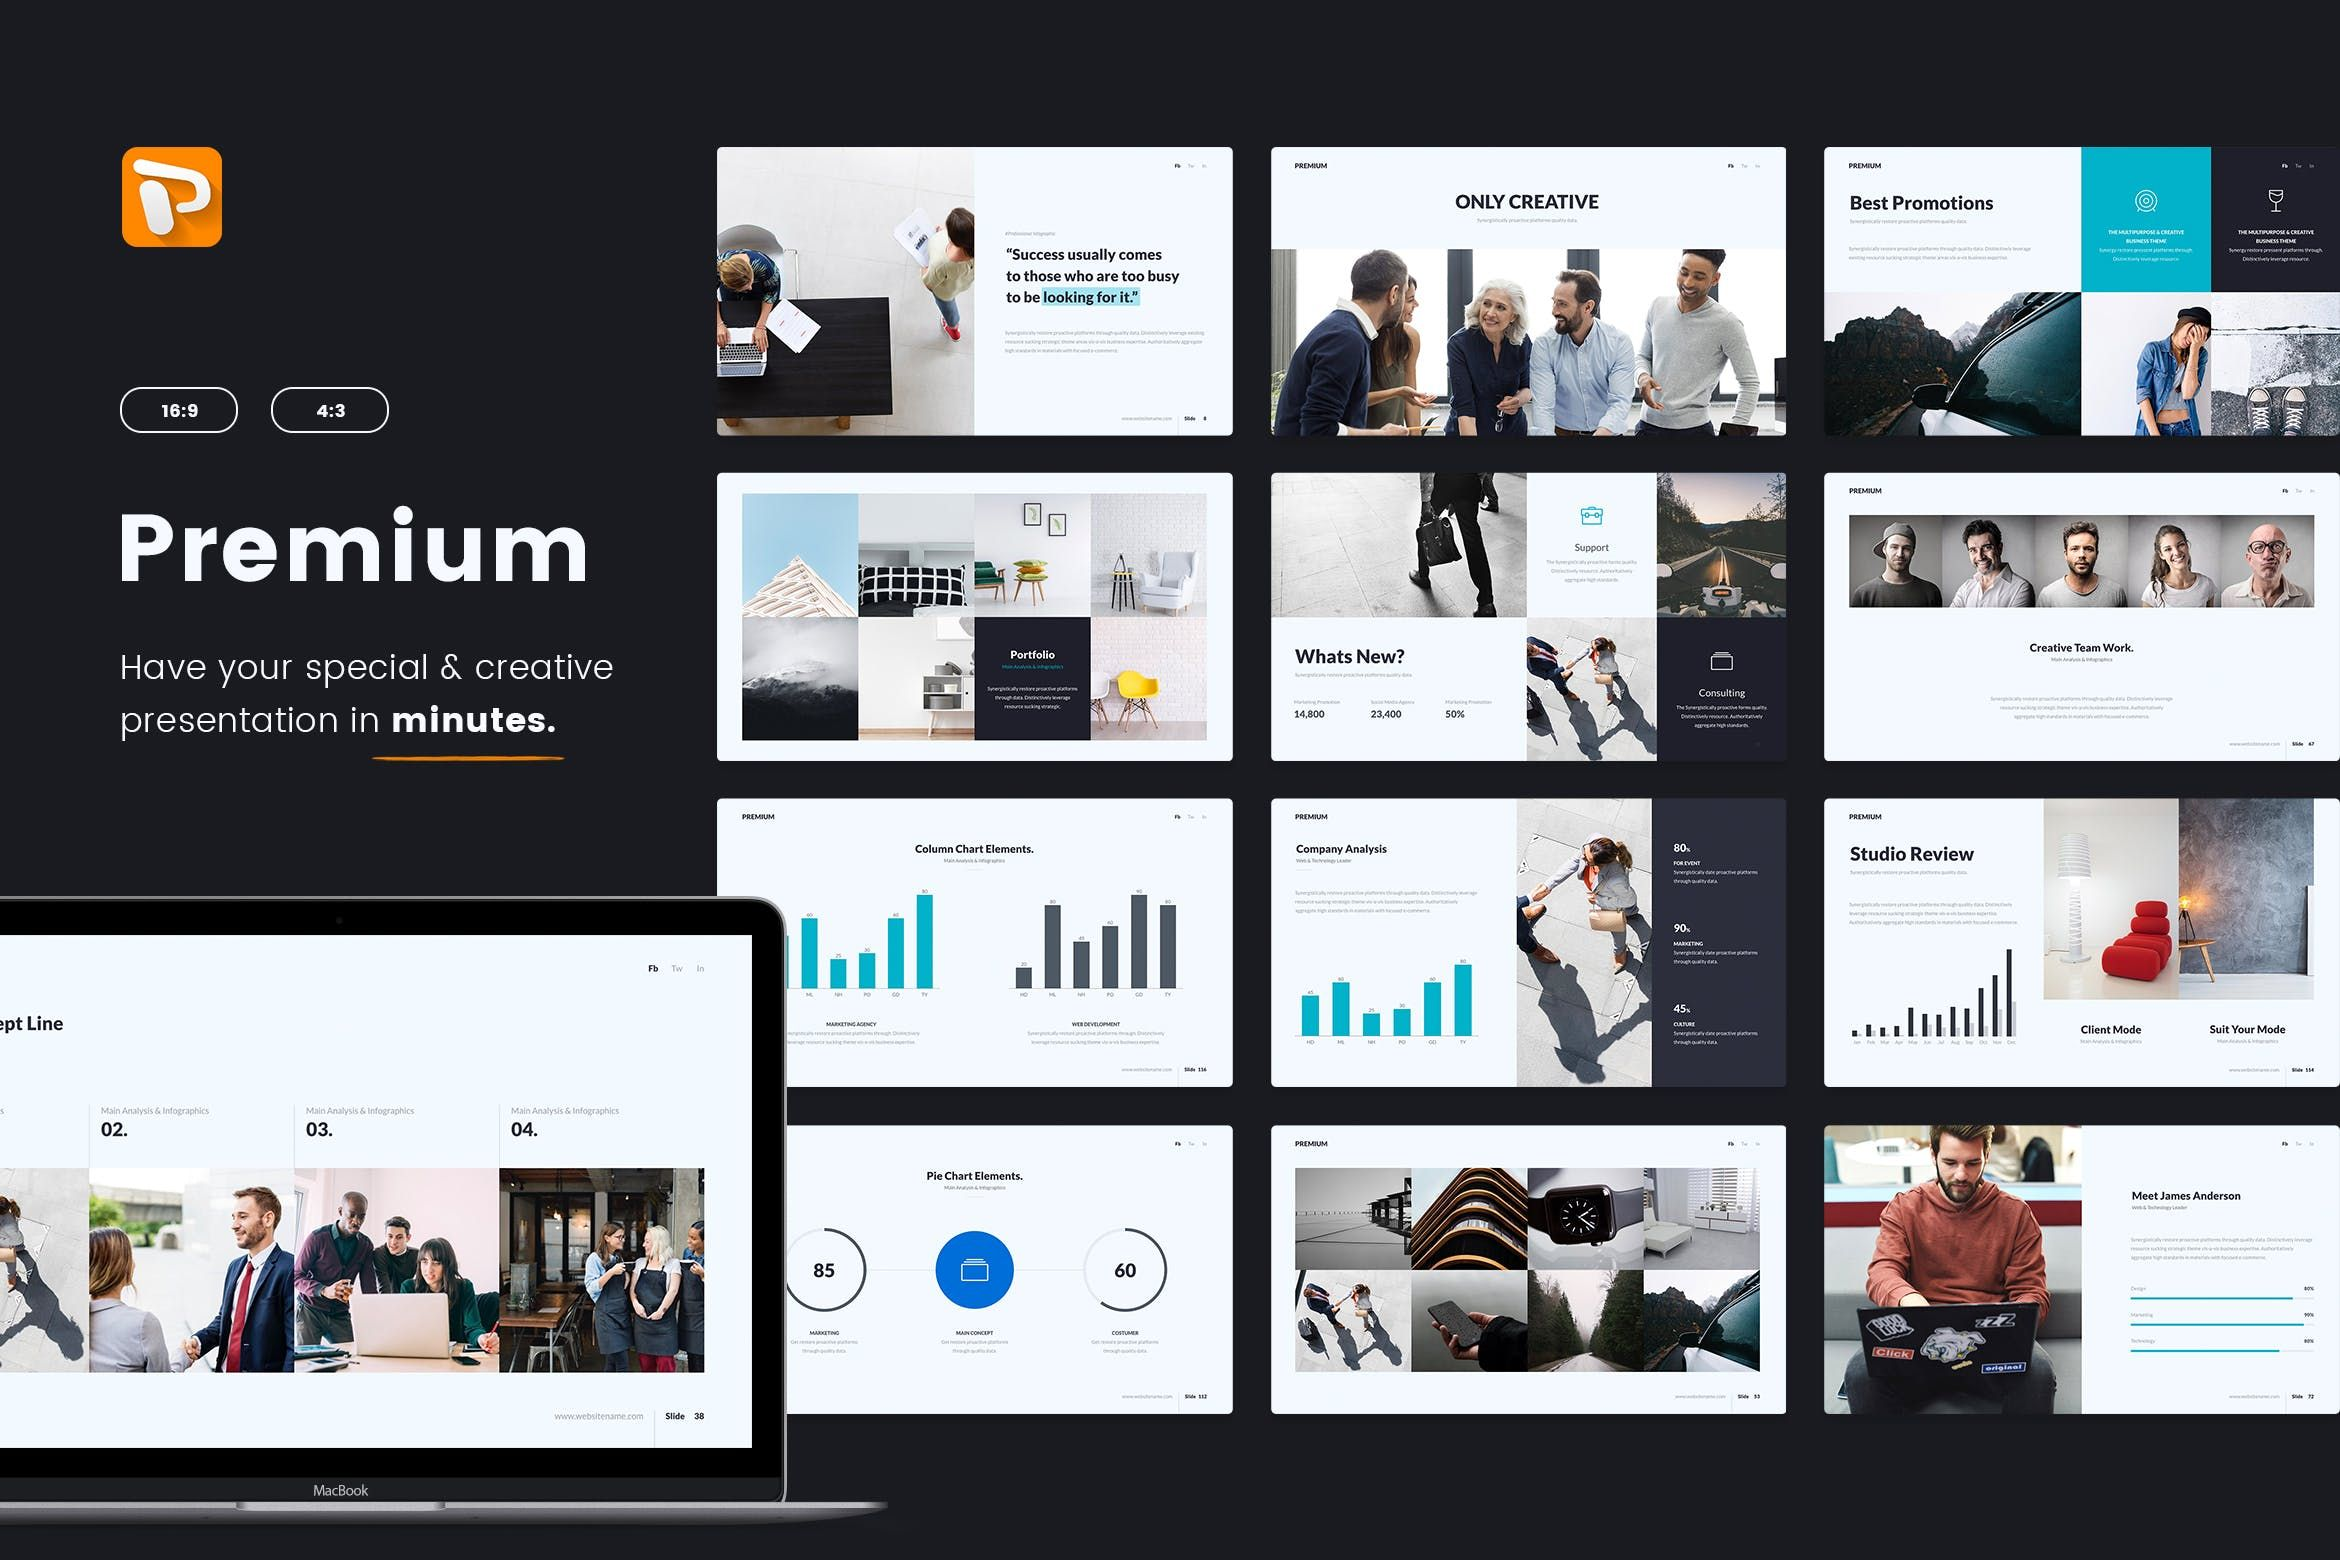 Premium Business Multipurpose Powerpoint By Simplesmart On Envato Elements Business Template Content Infographic Envato